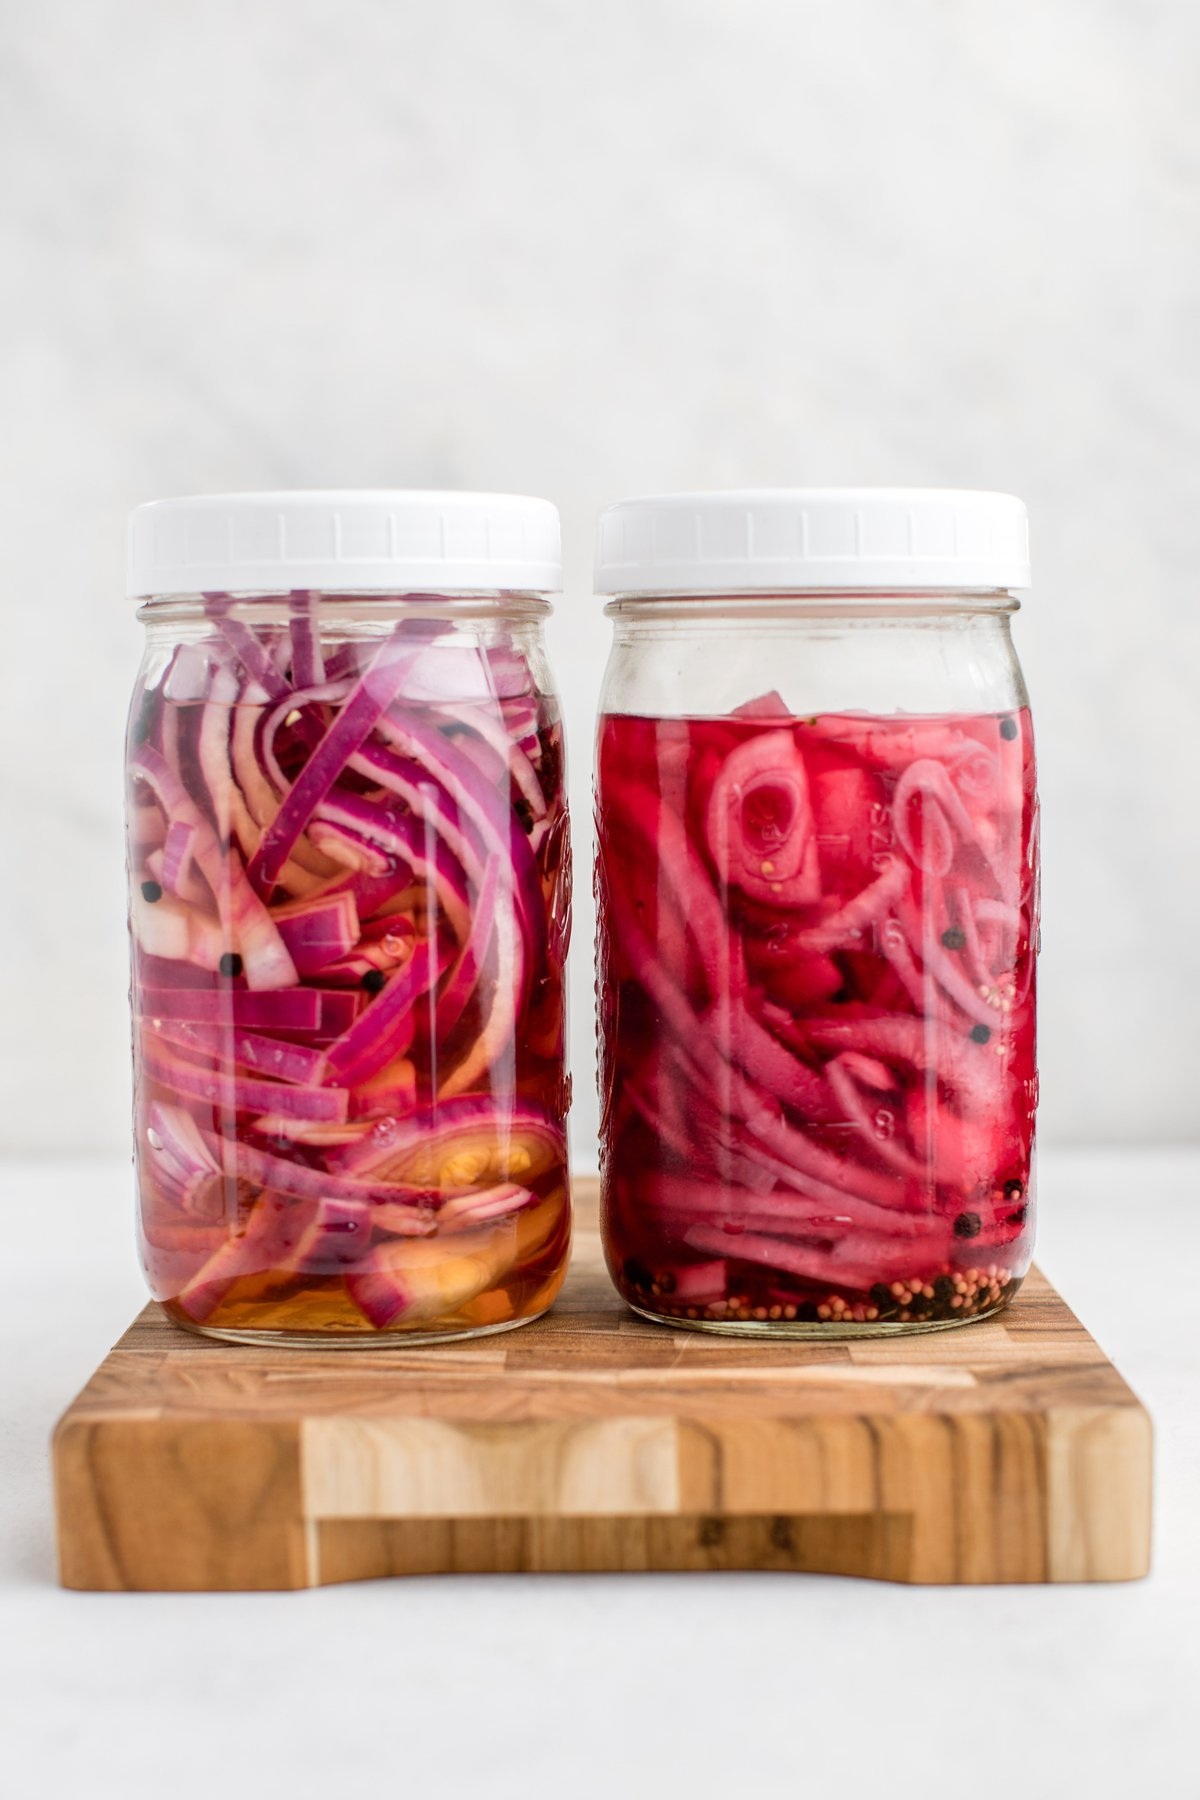 jar of fresh pickled red onions next to jar of week-old pickled red onions